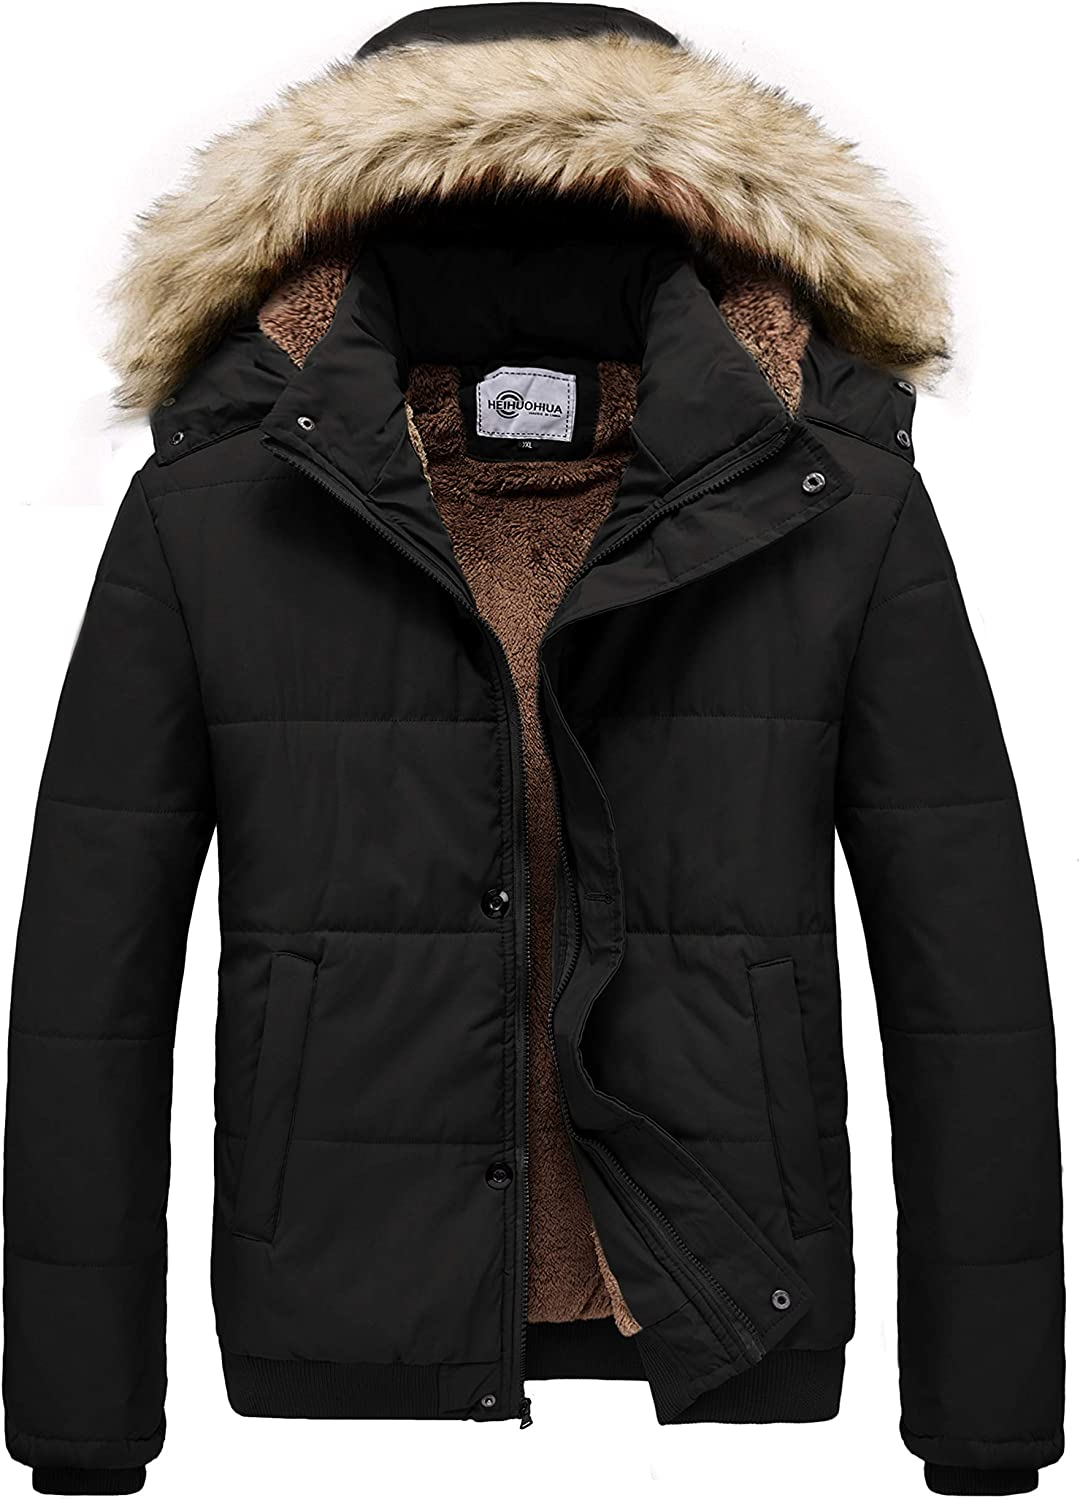 Men's Winter Thicken Coat Warm Puffer Jacket with Removable Hood